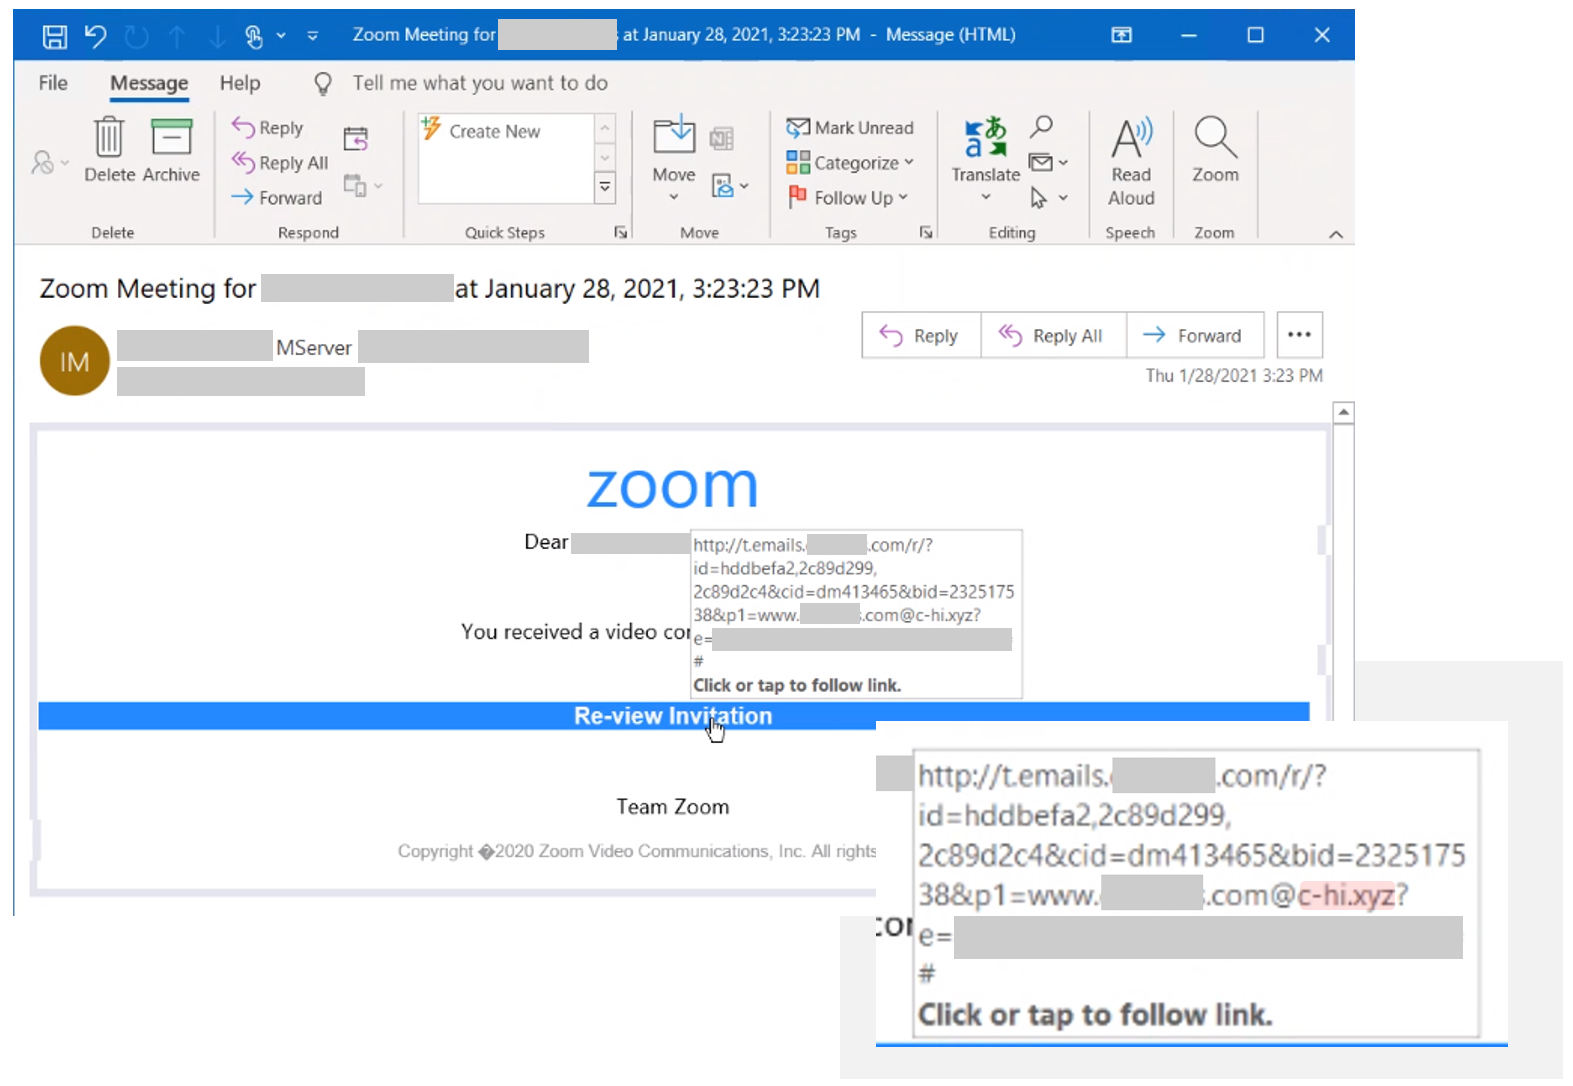 Screenshot of email showing open redirector link when mouse is hovered the link in the email